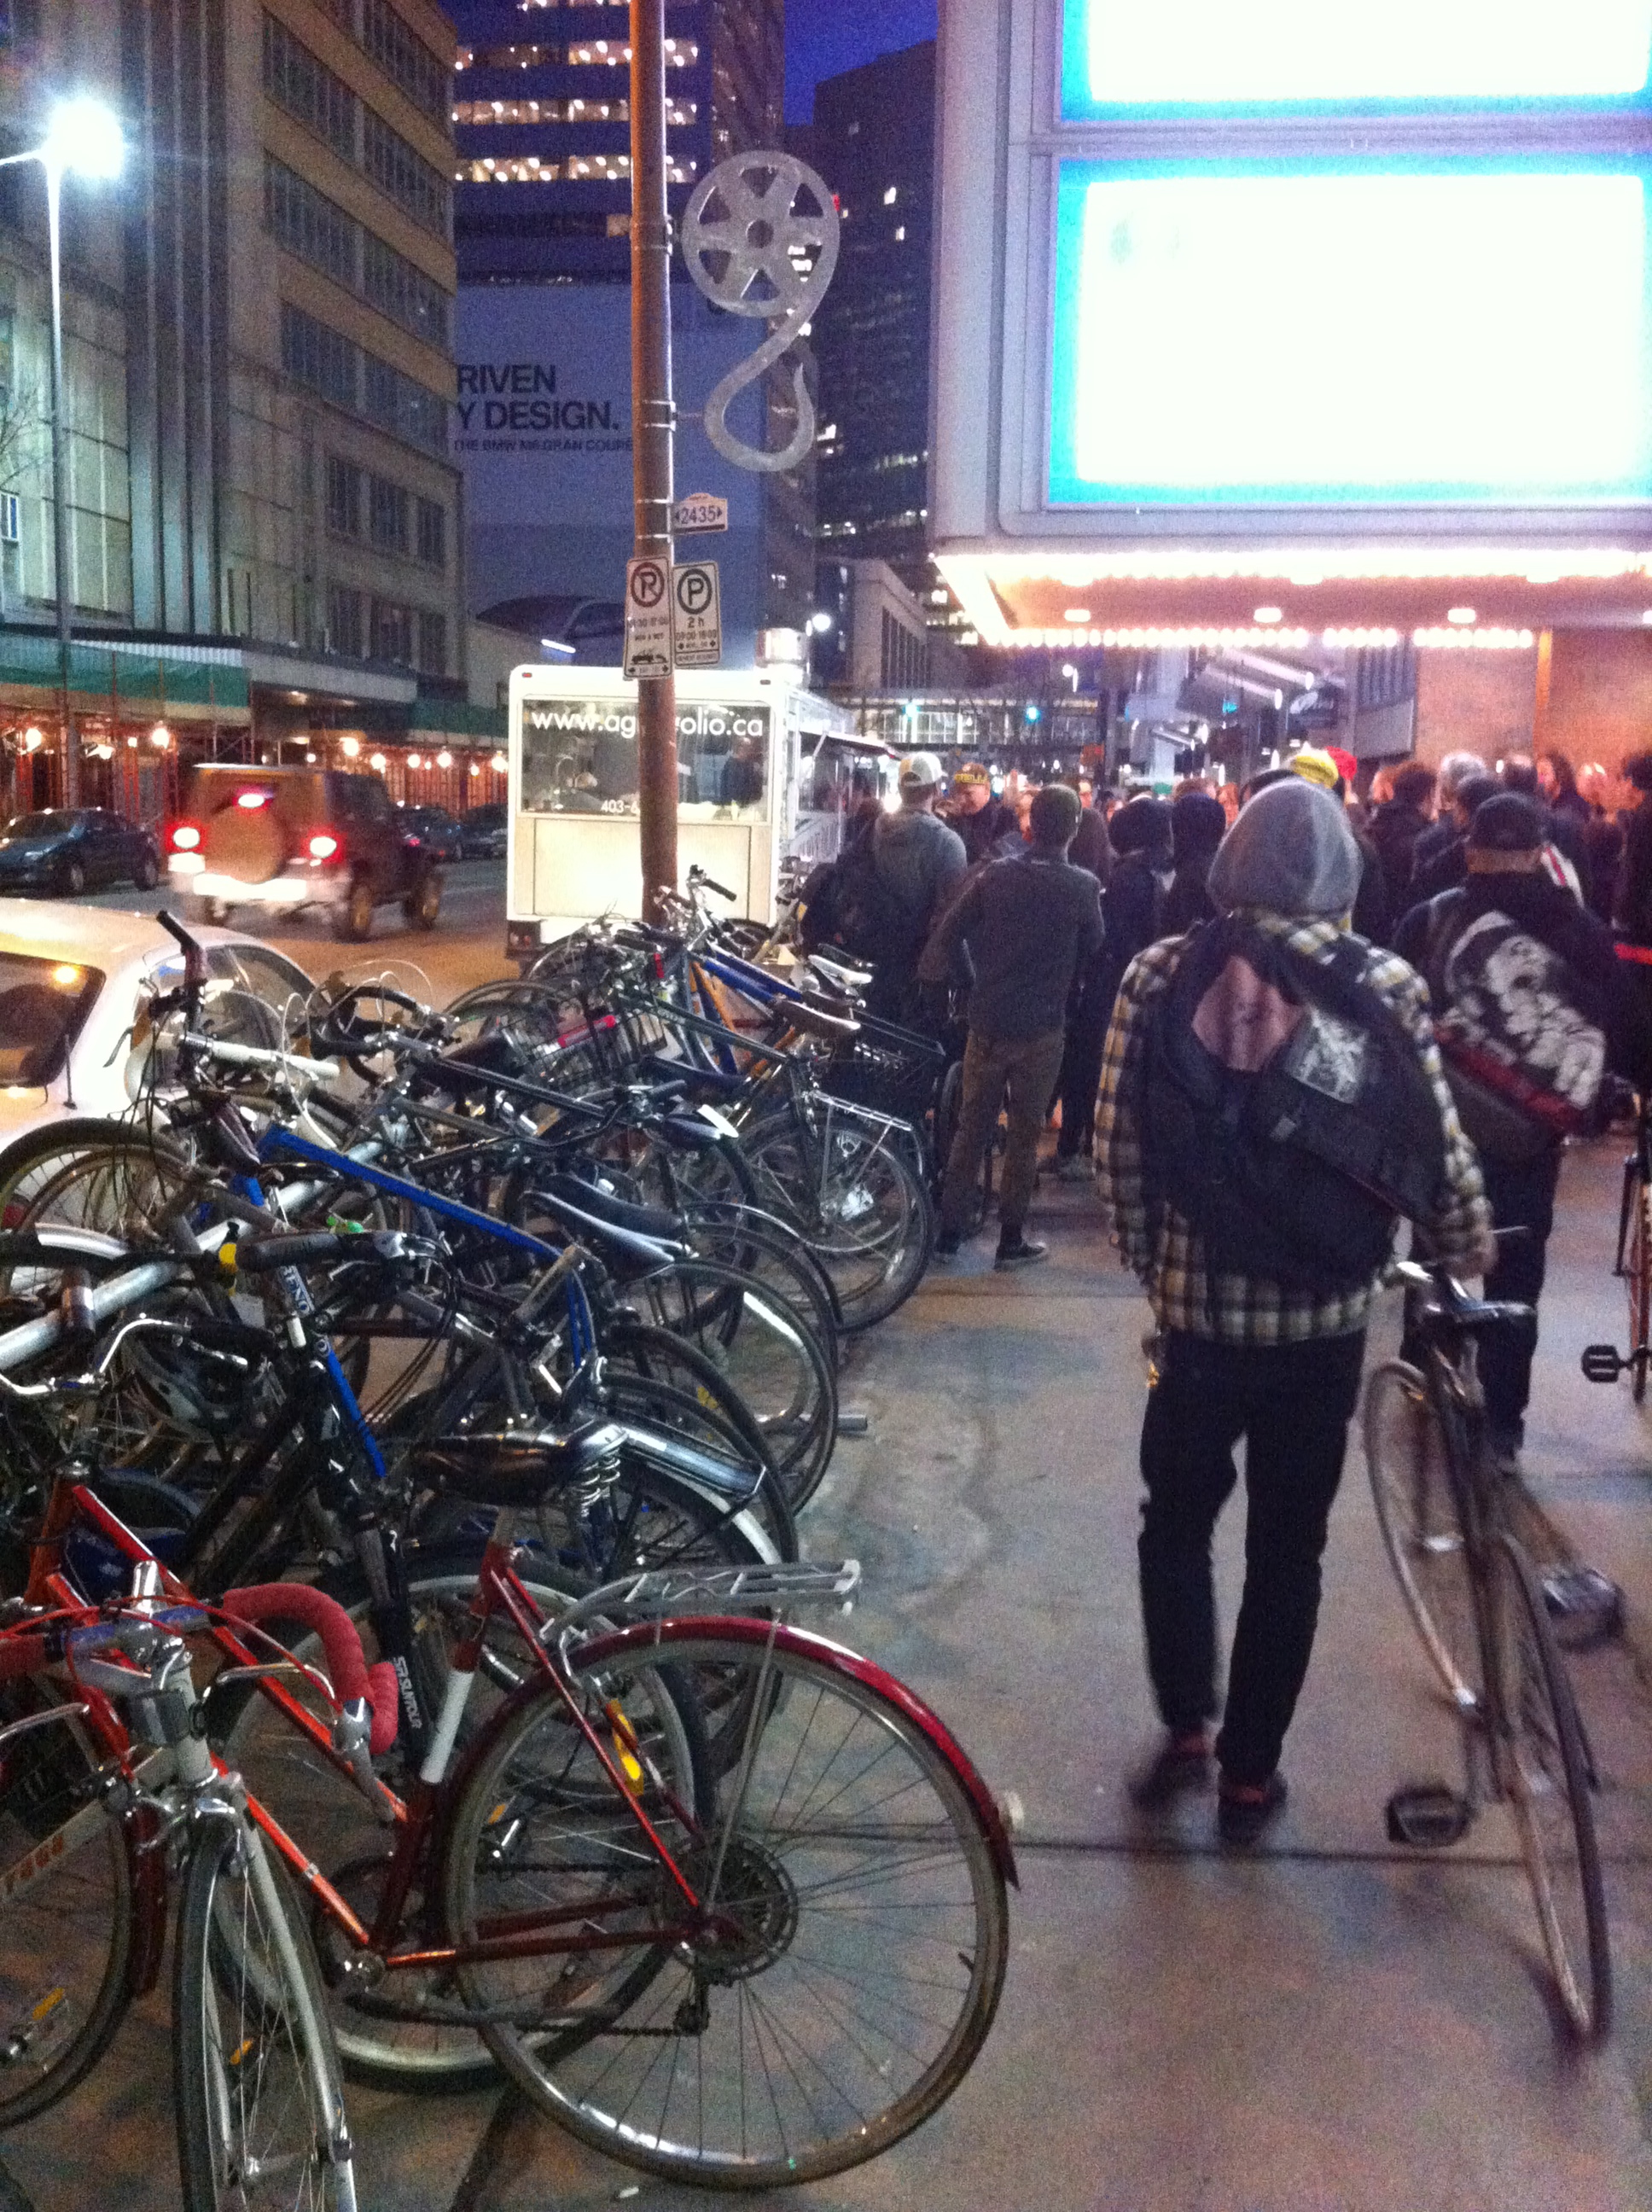 At last April's Calgary Underground Film Festival, many of the patrons came downtown on their bikes - even at night.